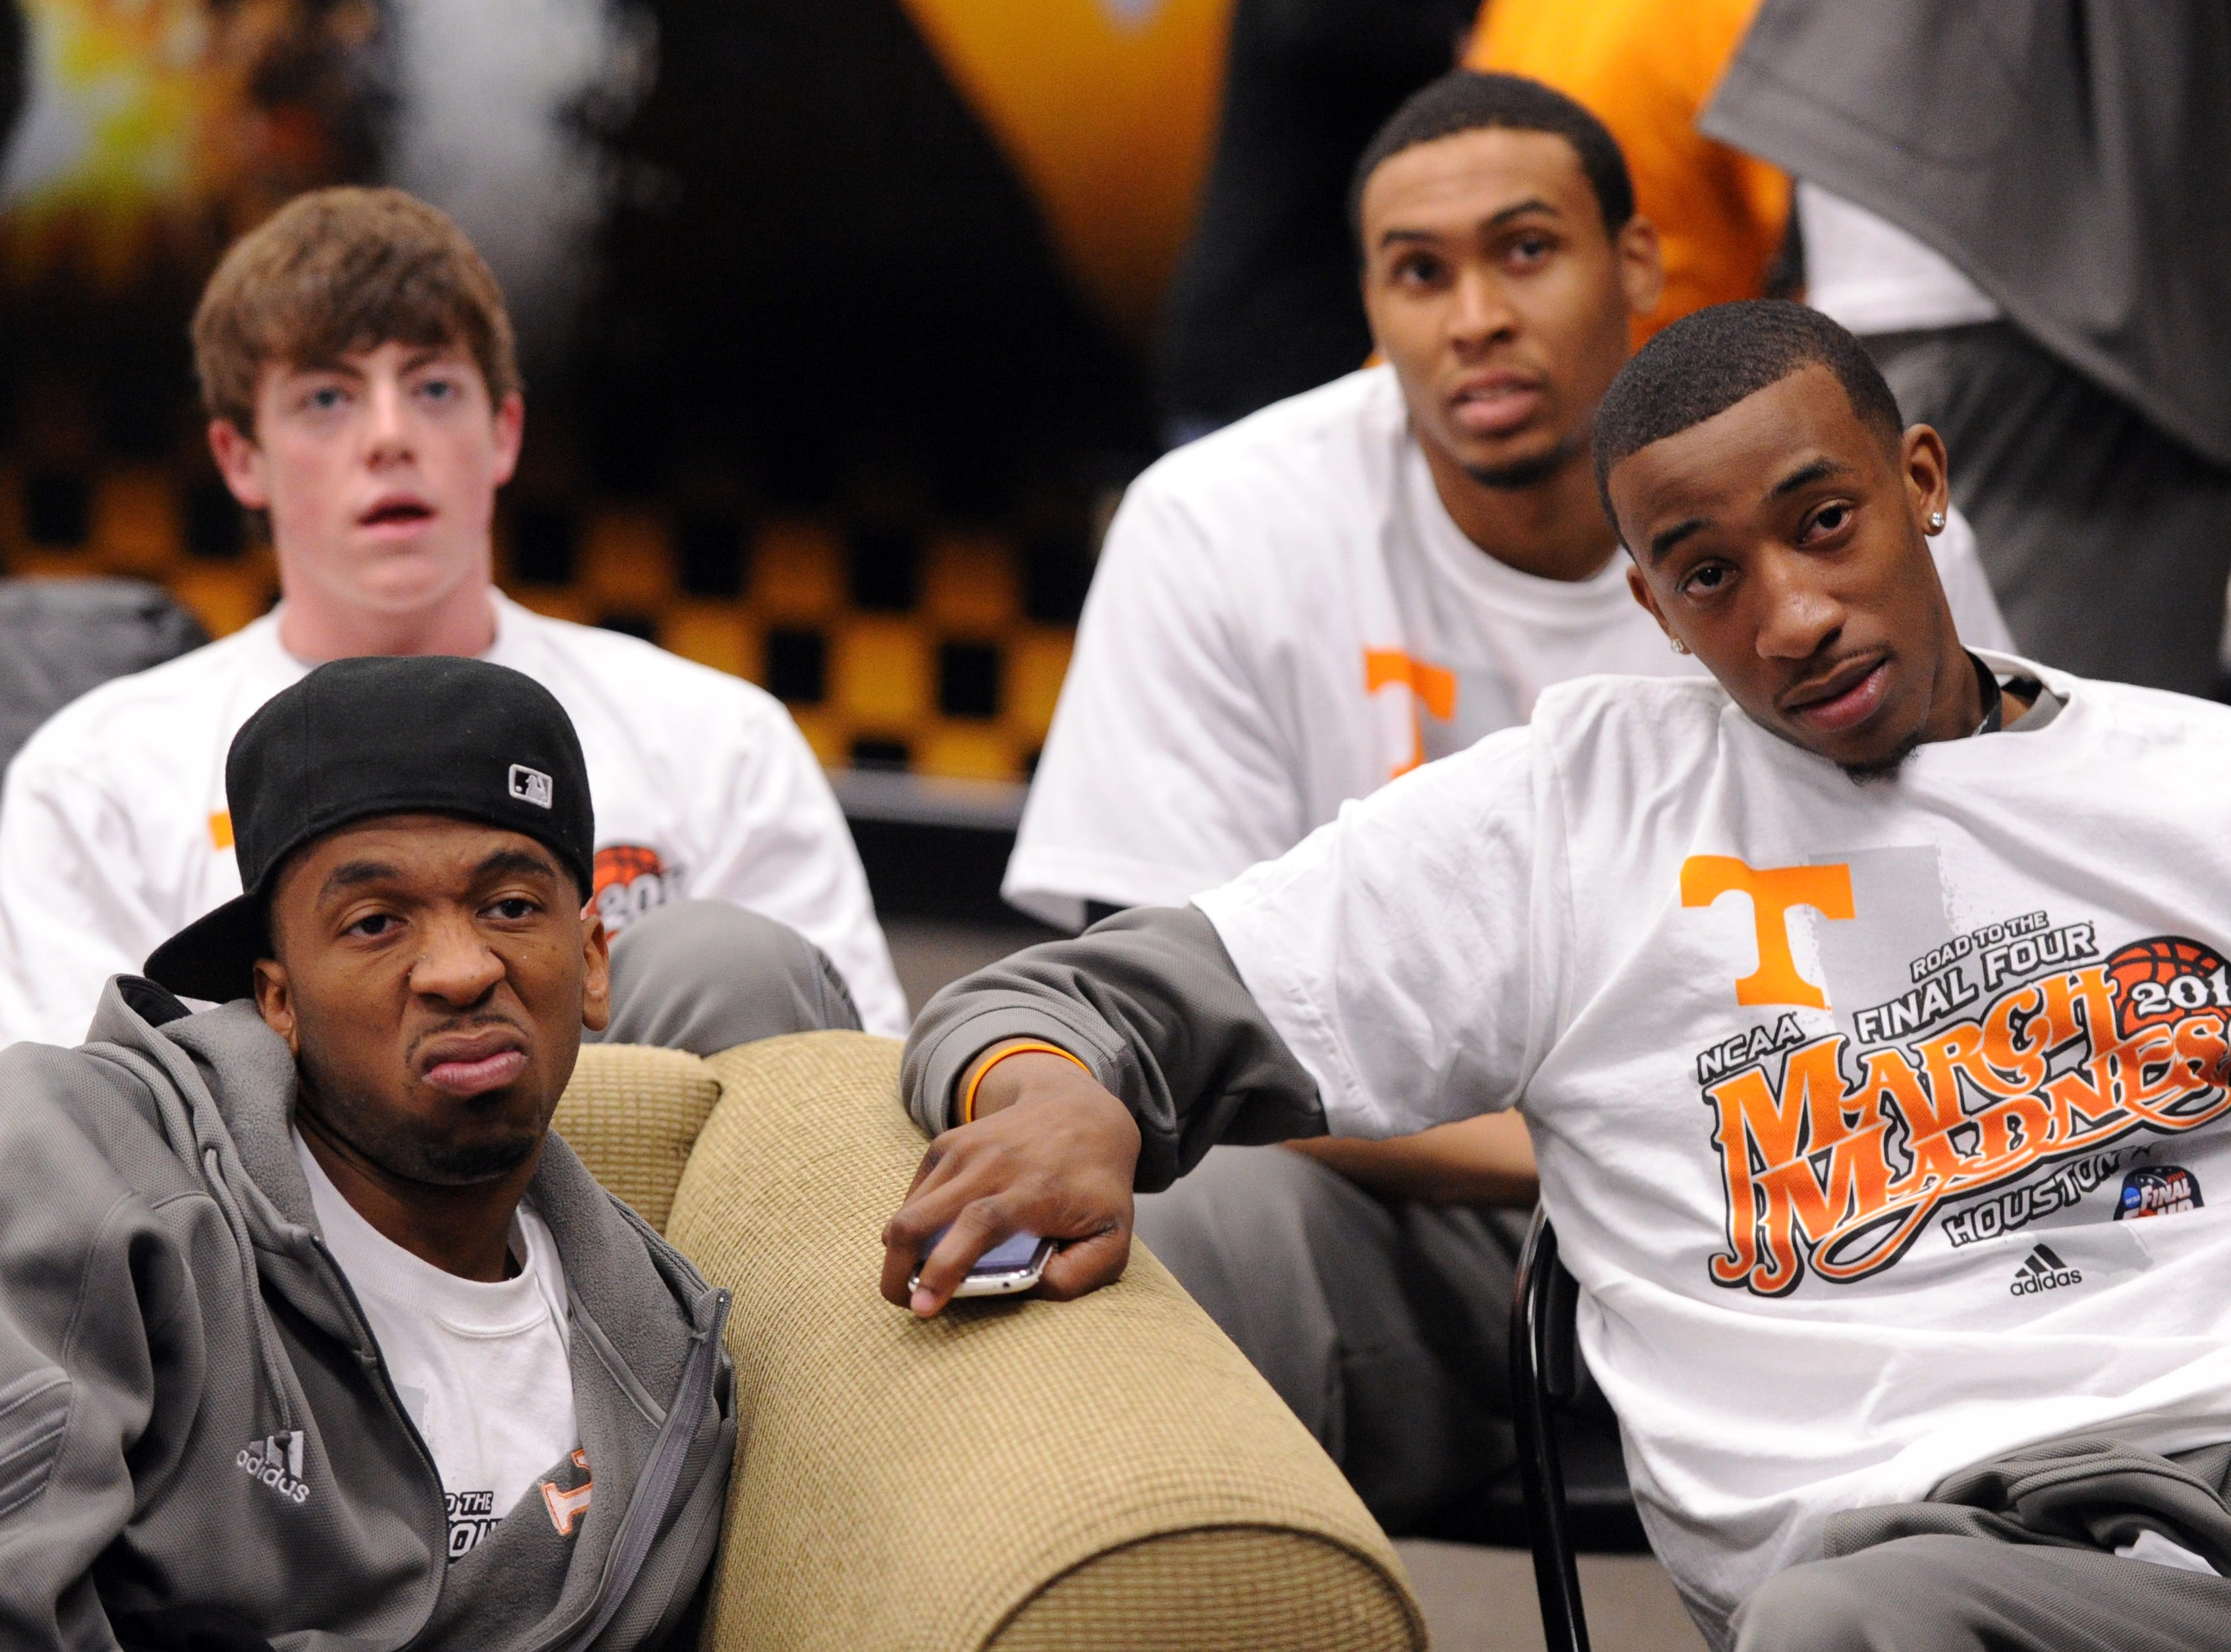 From left, Tennessee's Cameron Tatum, Tyler Summitt, John Fields, and Jordan McRae wait for the results of the NCAA selection shot during a viewing party at Thompson-Boling Arena on Sunday, March 13, 2011. Tennessee earned a #9 seed in the West Region of the NCAA tournament.